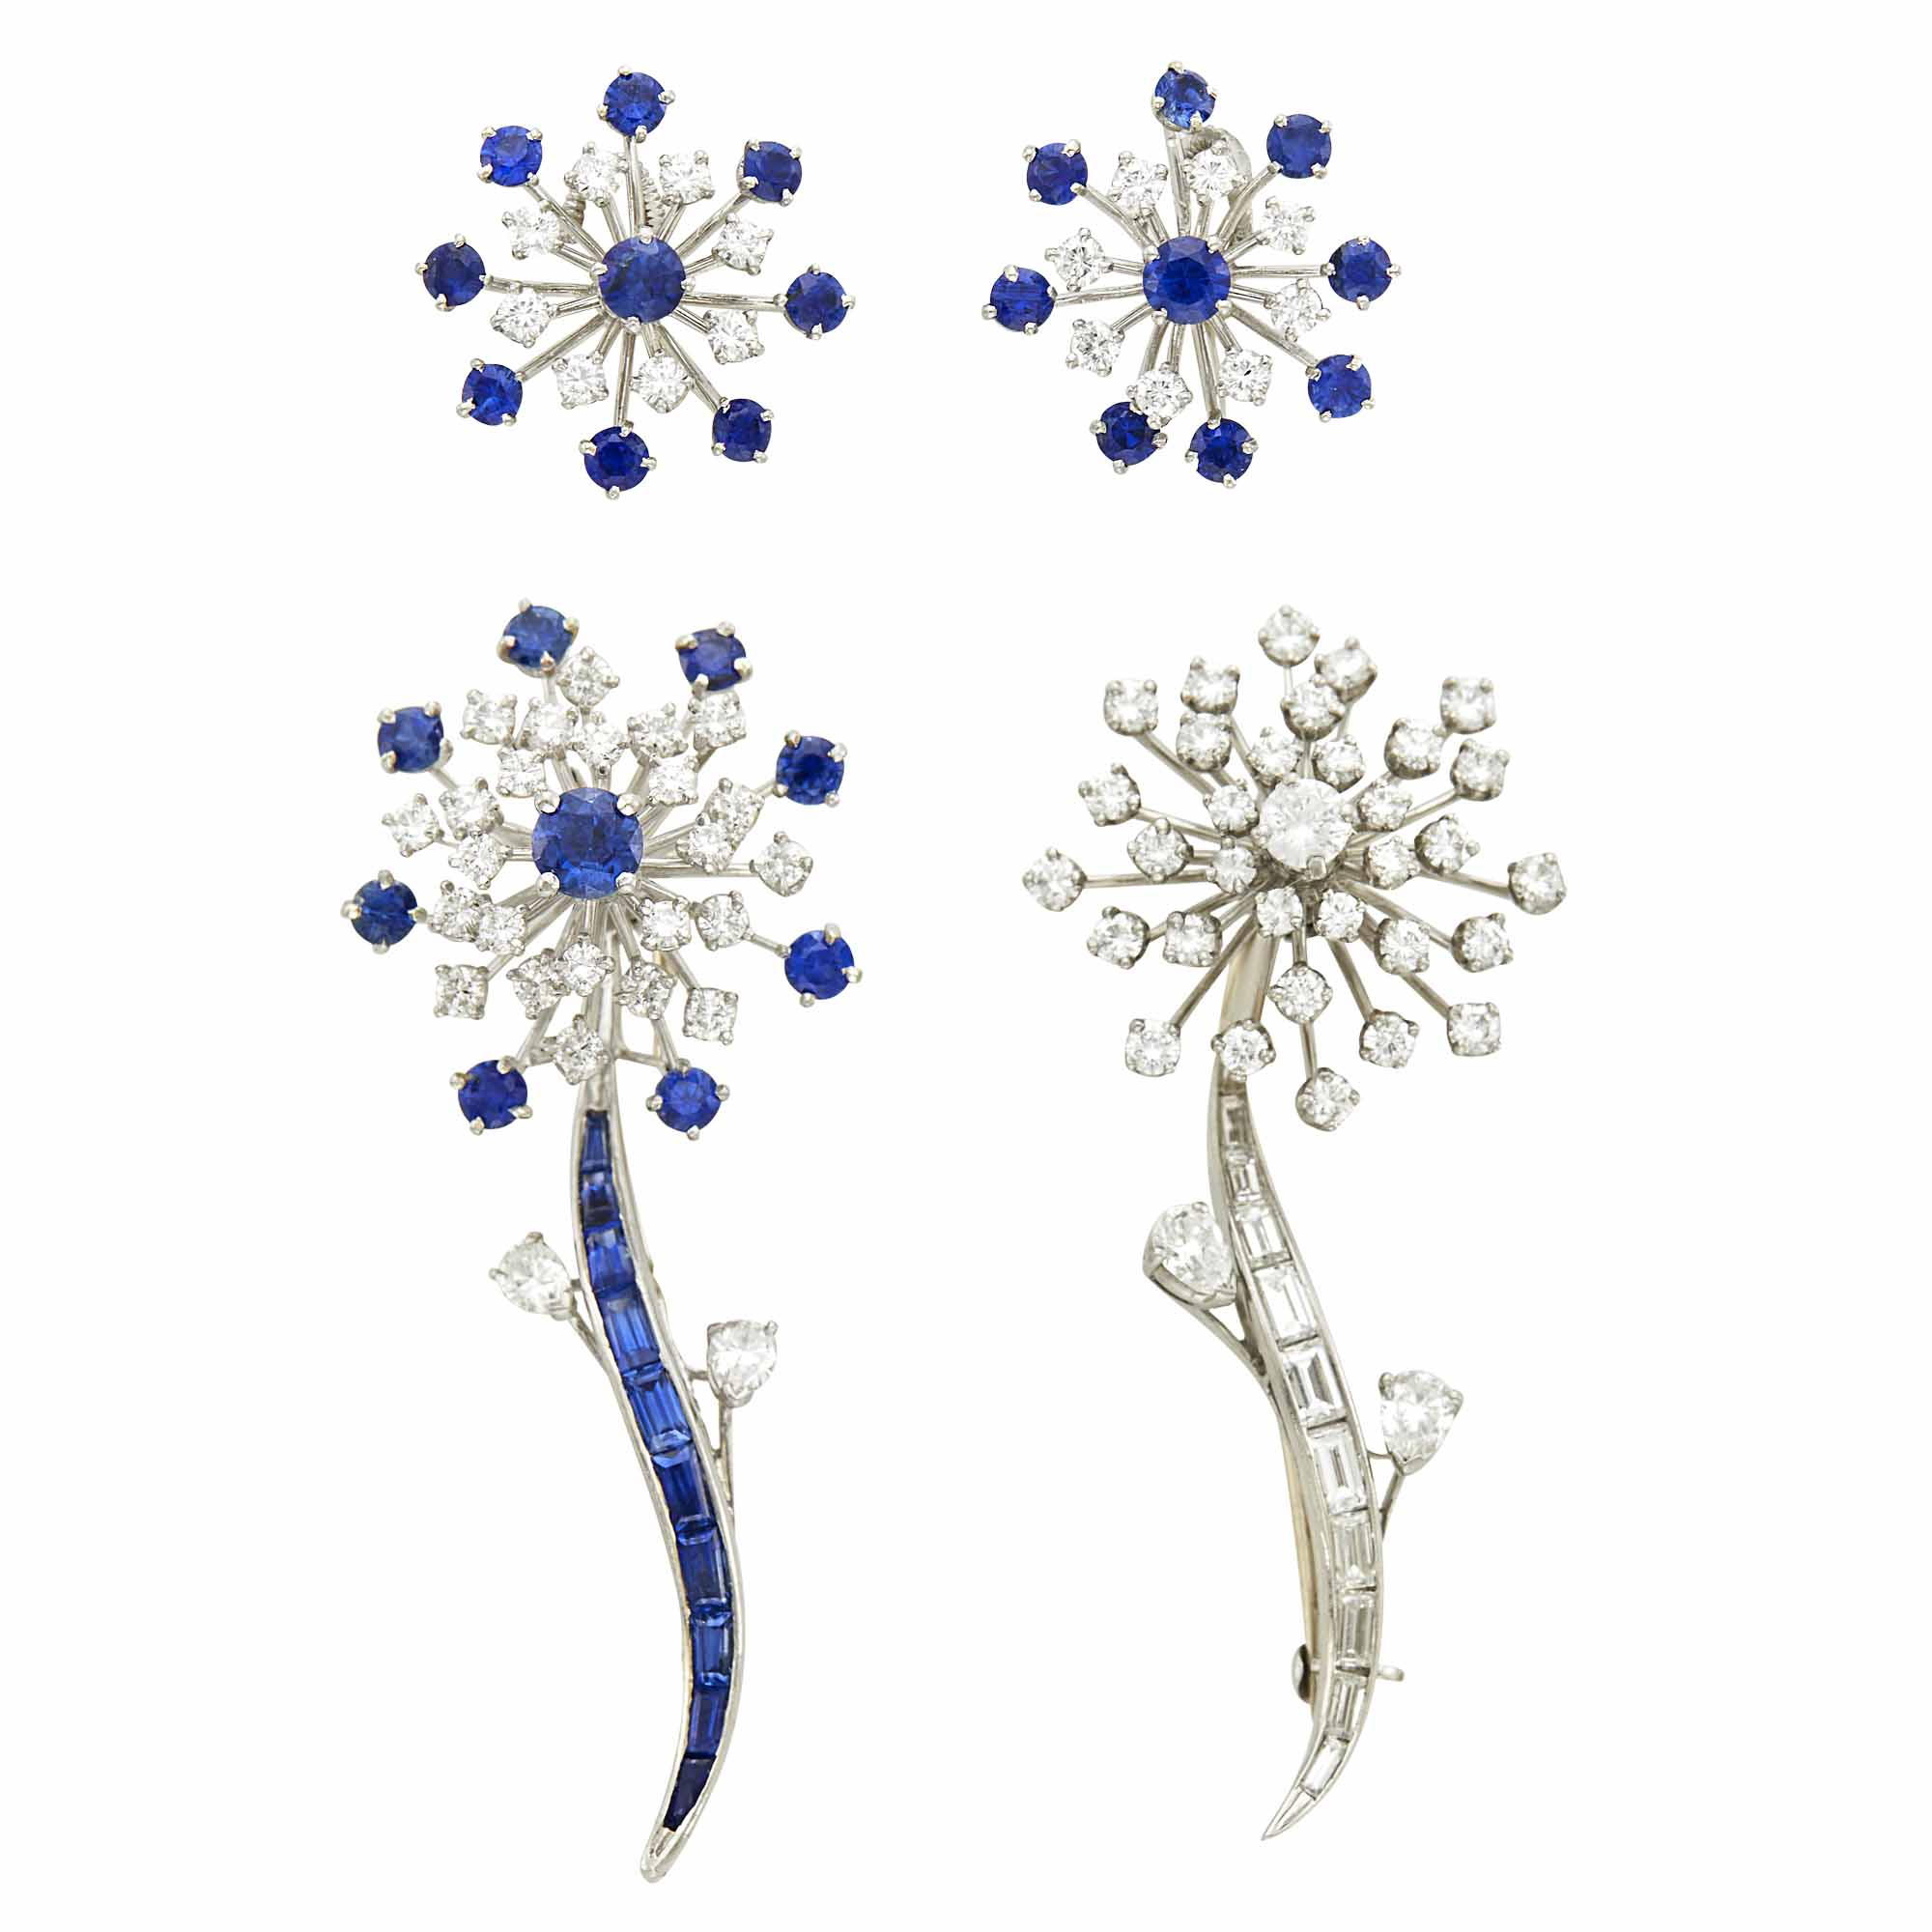 Lot image - Oscar Heyman Brothers Pair of Platinum, Sapphire and Diamond Flower Brooches and Pair of Earrings